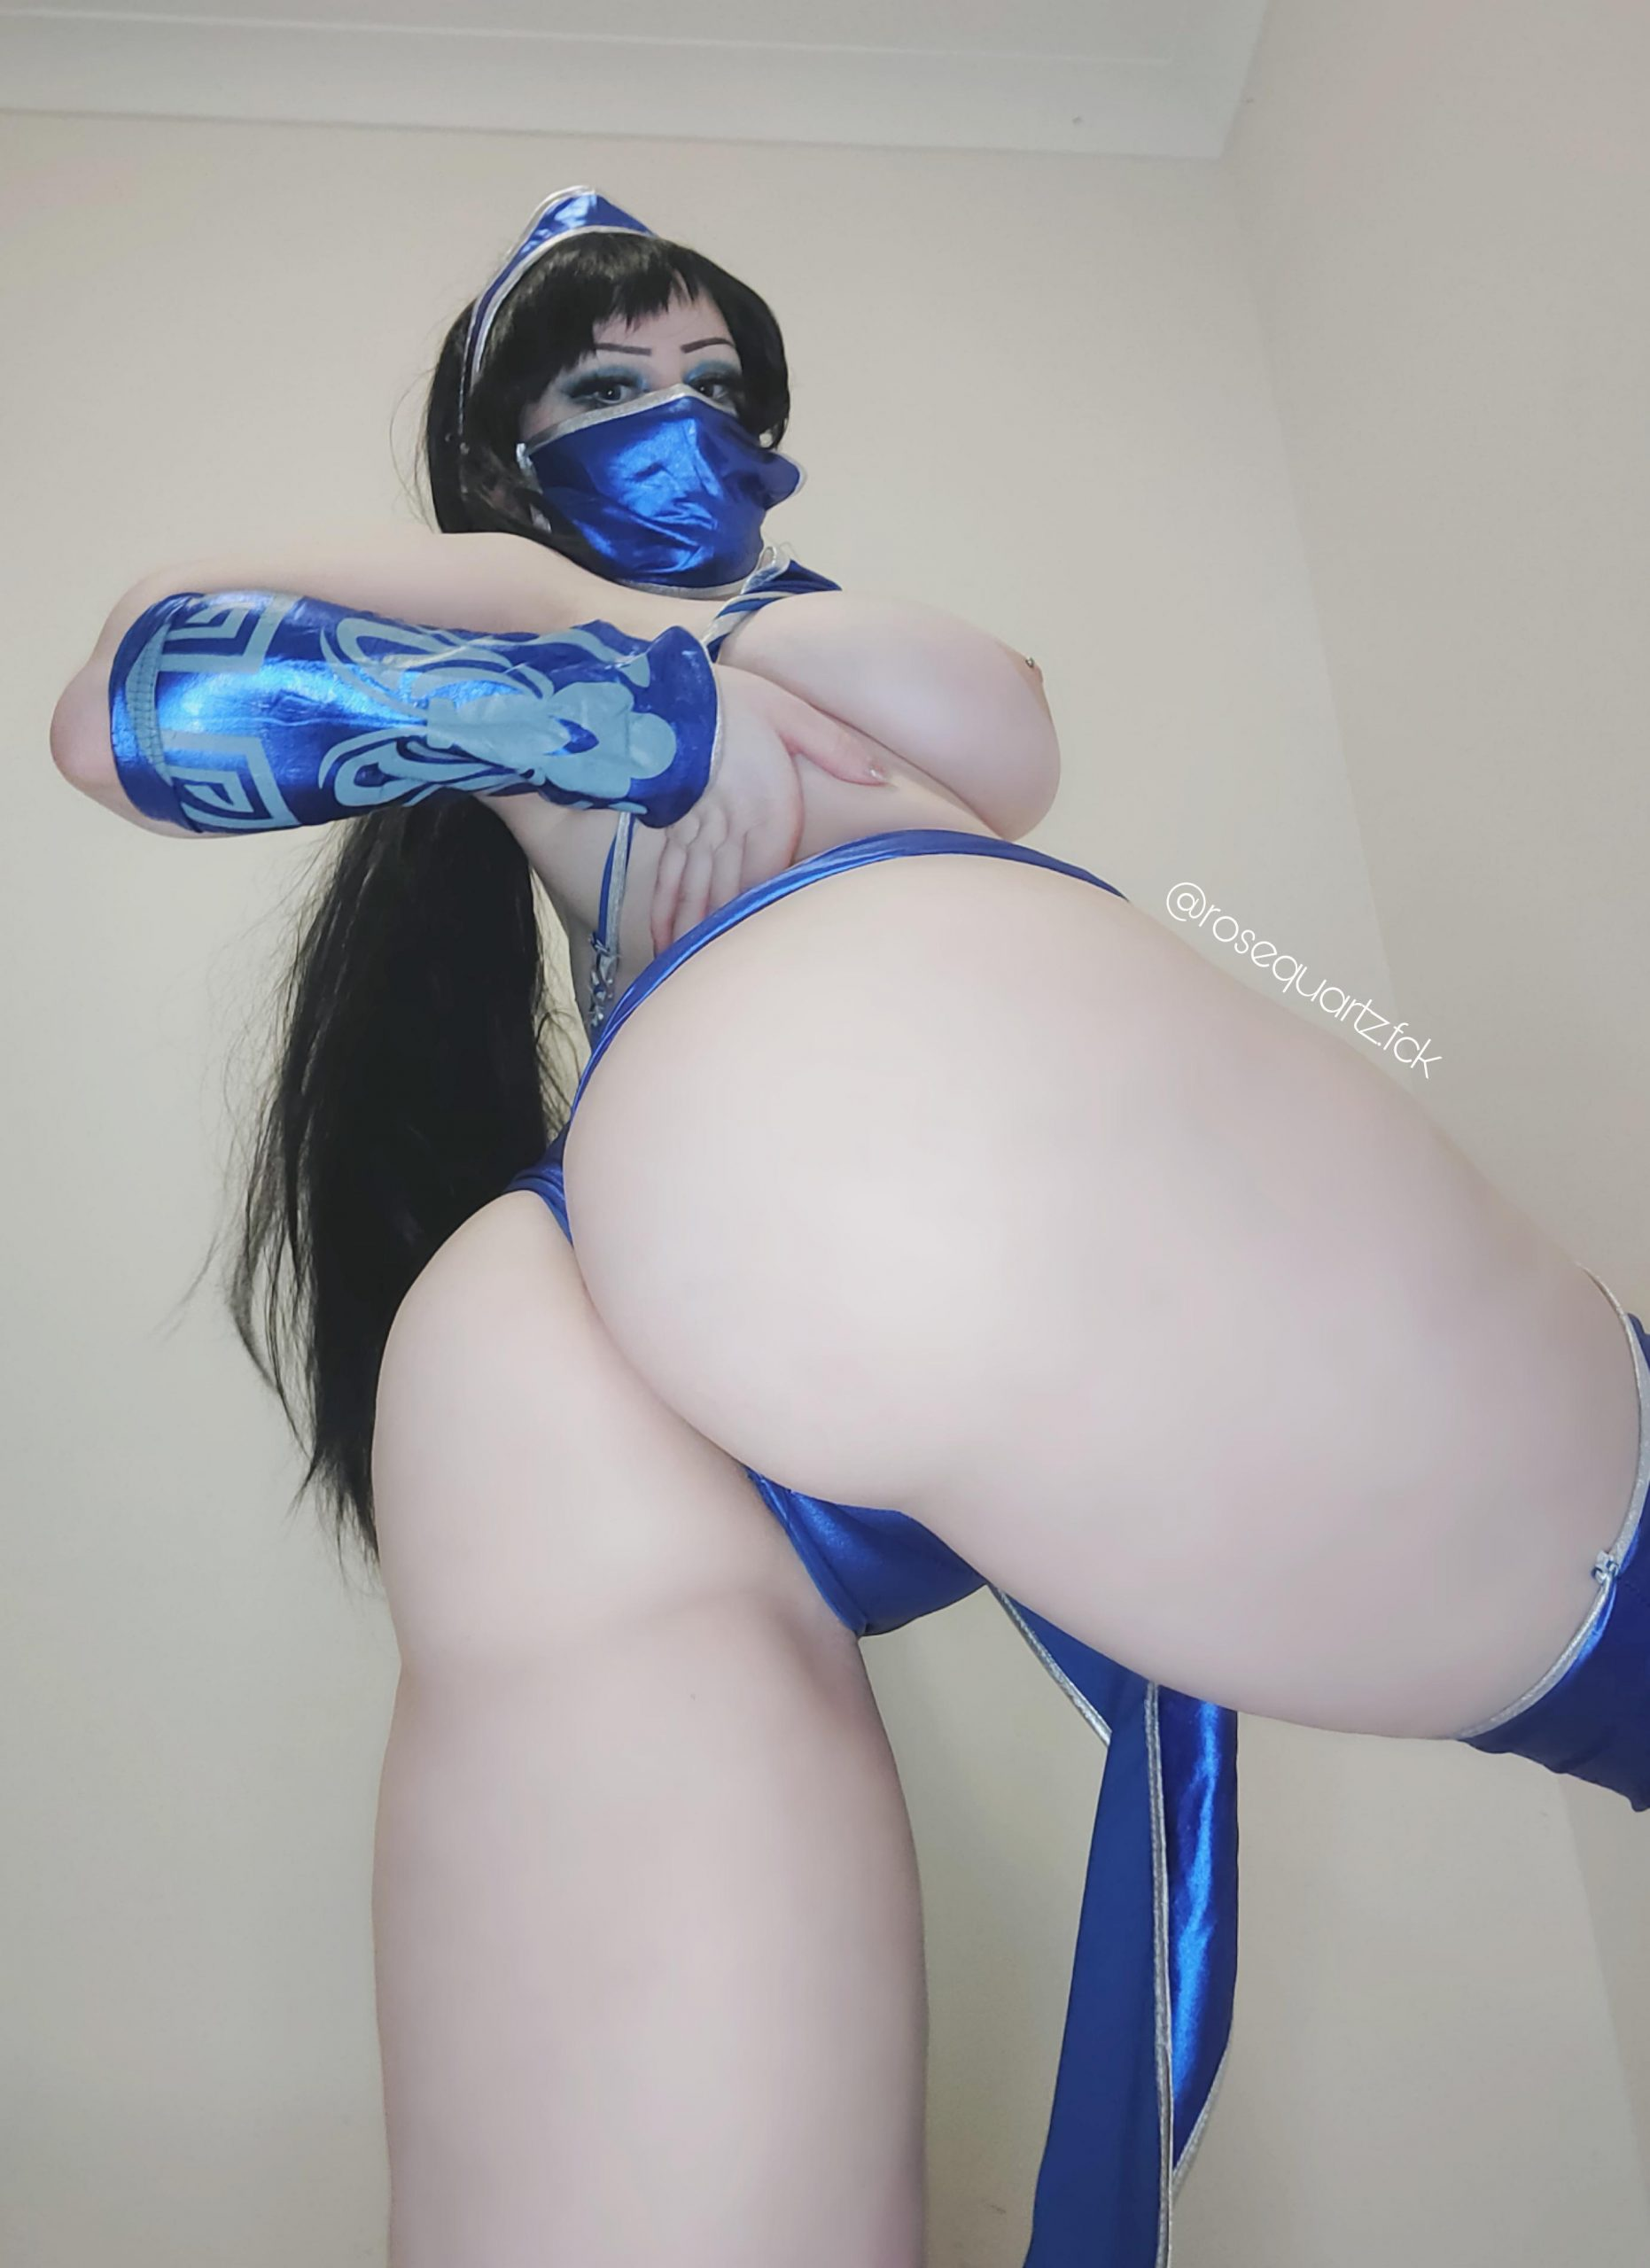 Kitana From Mortal Kombat Cosplayer RoseQuartzFck